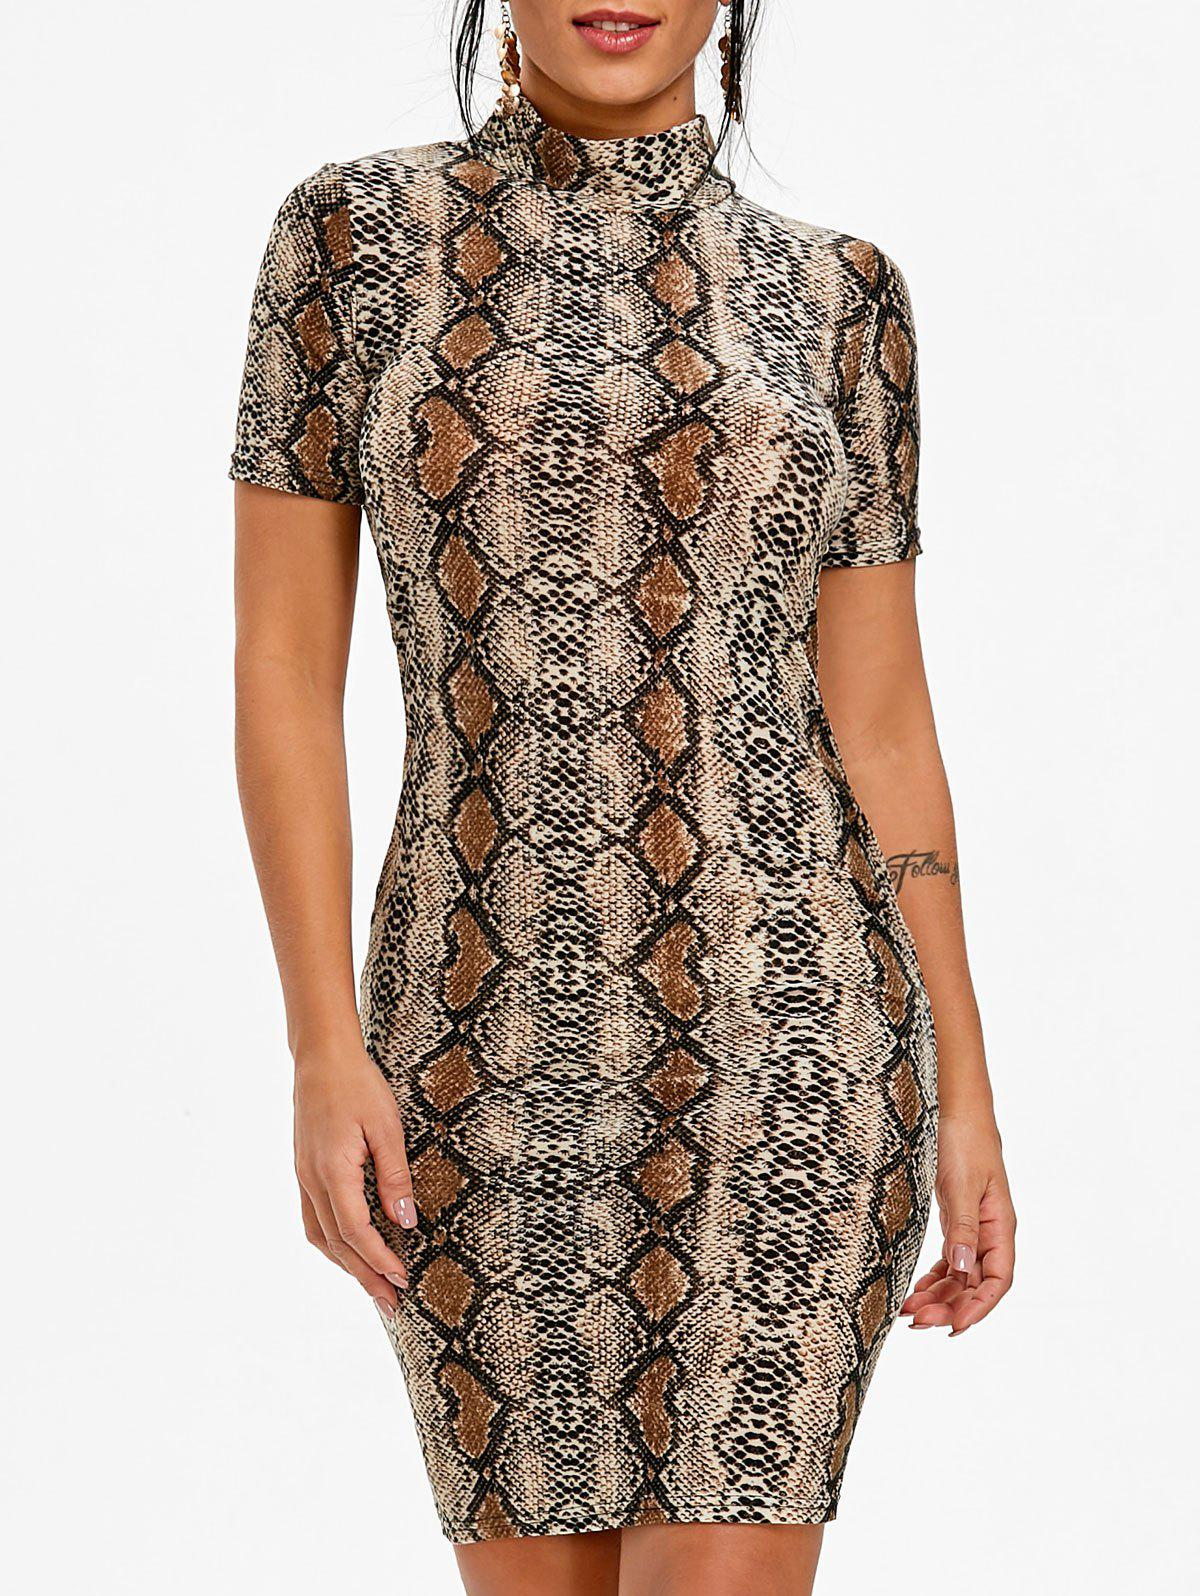 Snakeskin Print Short Sleeve Dress - multicolor XL